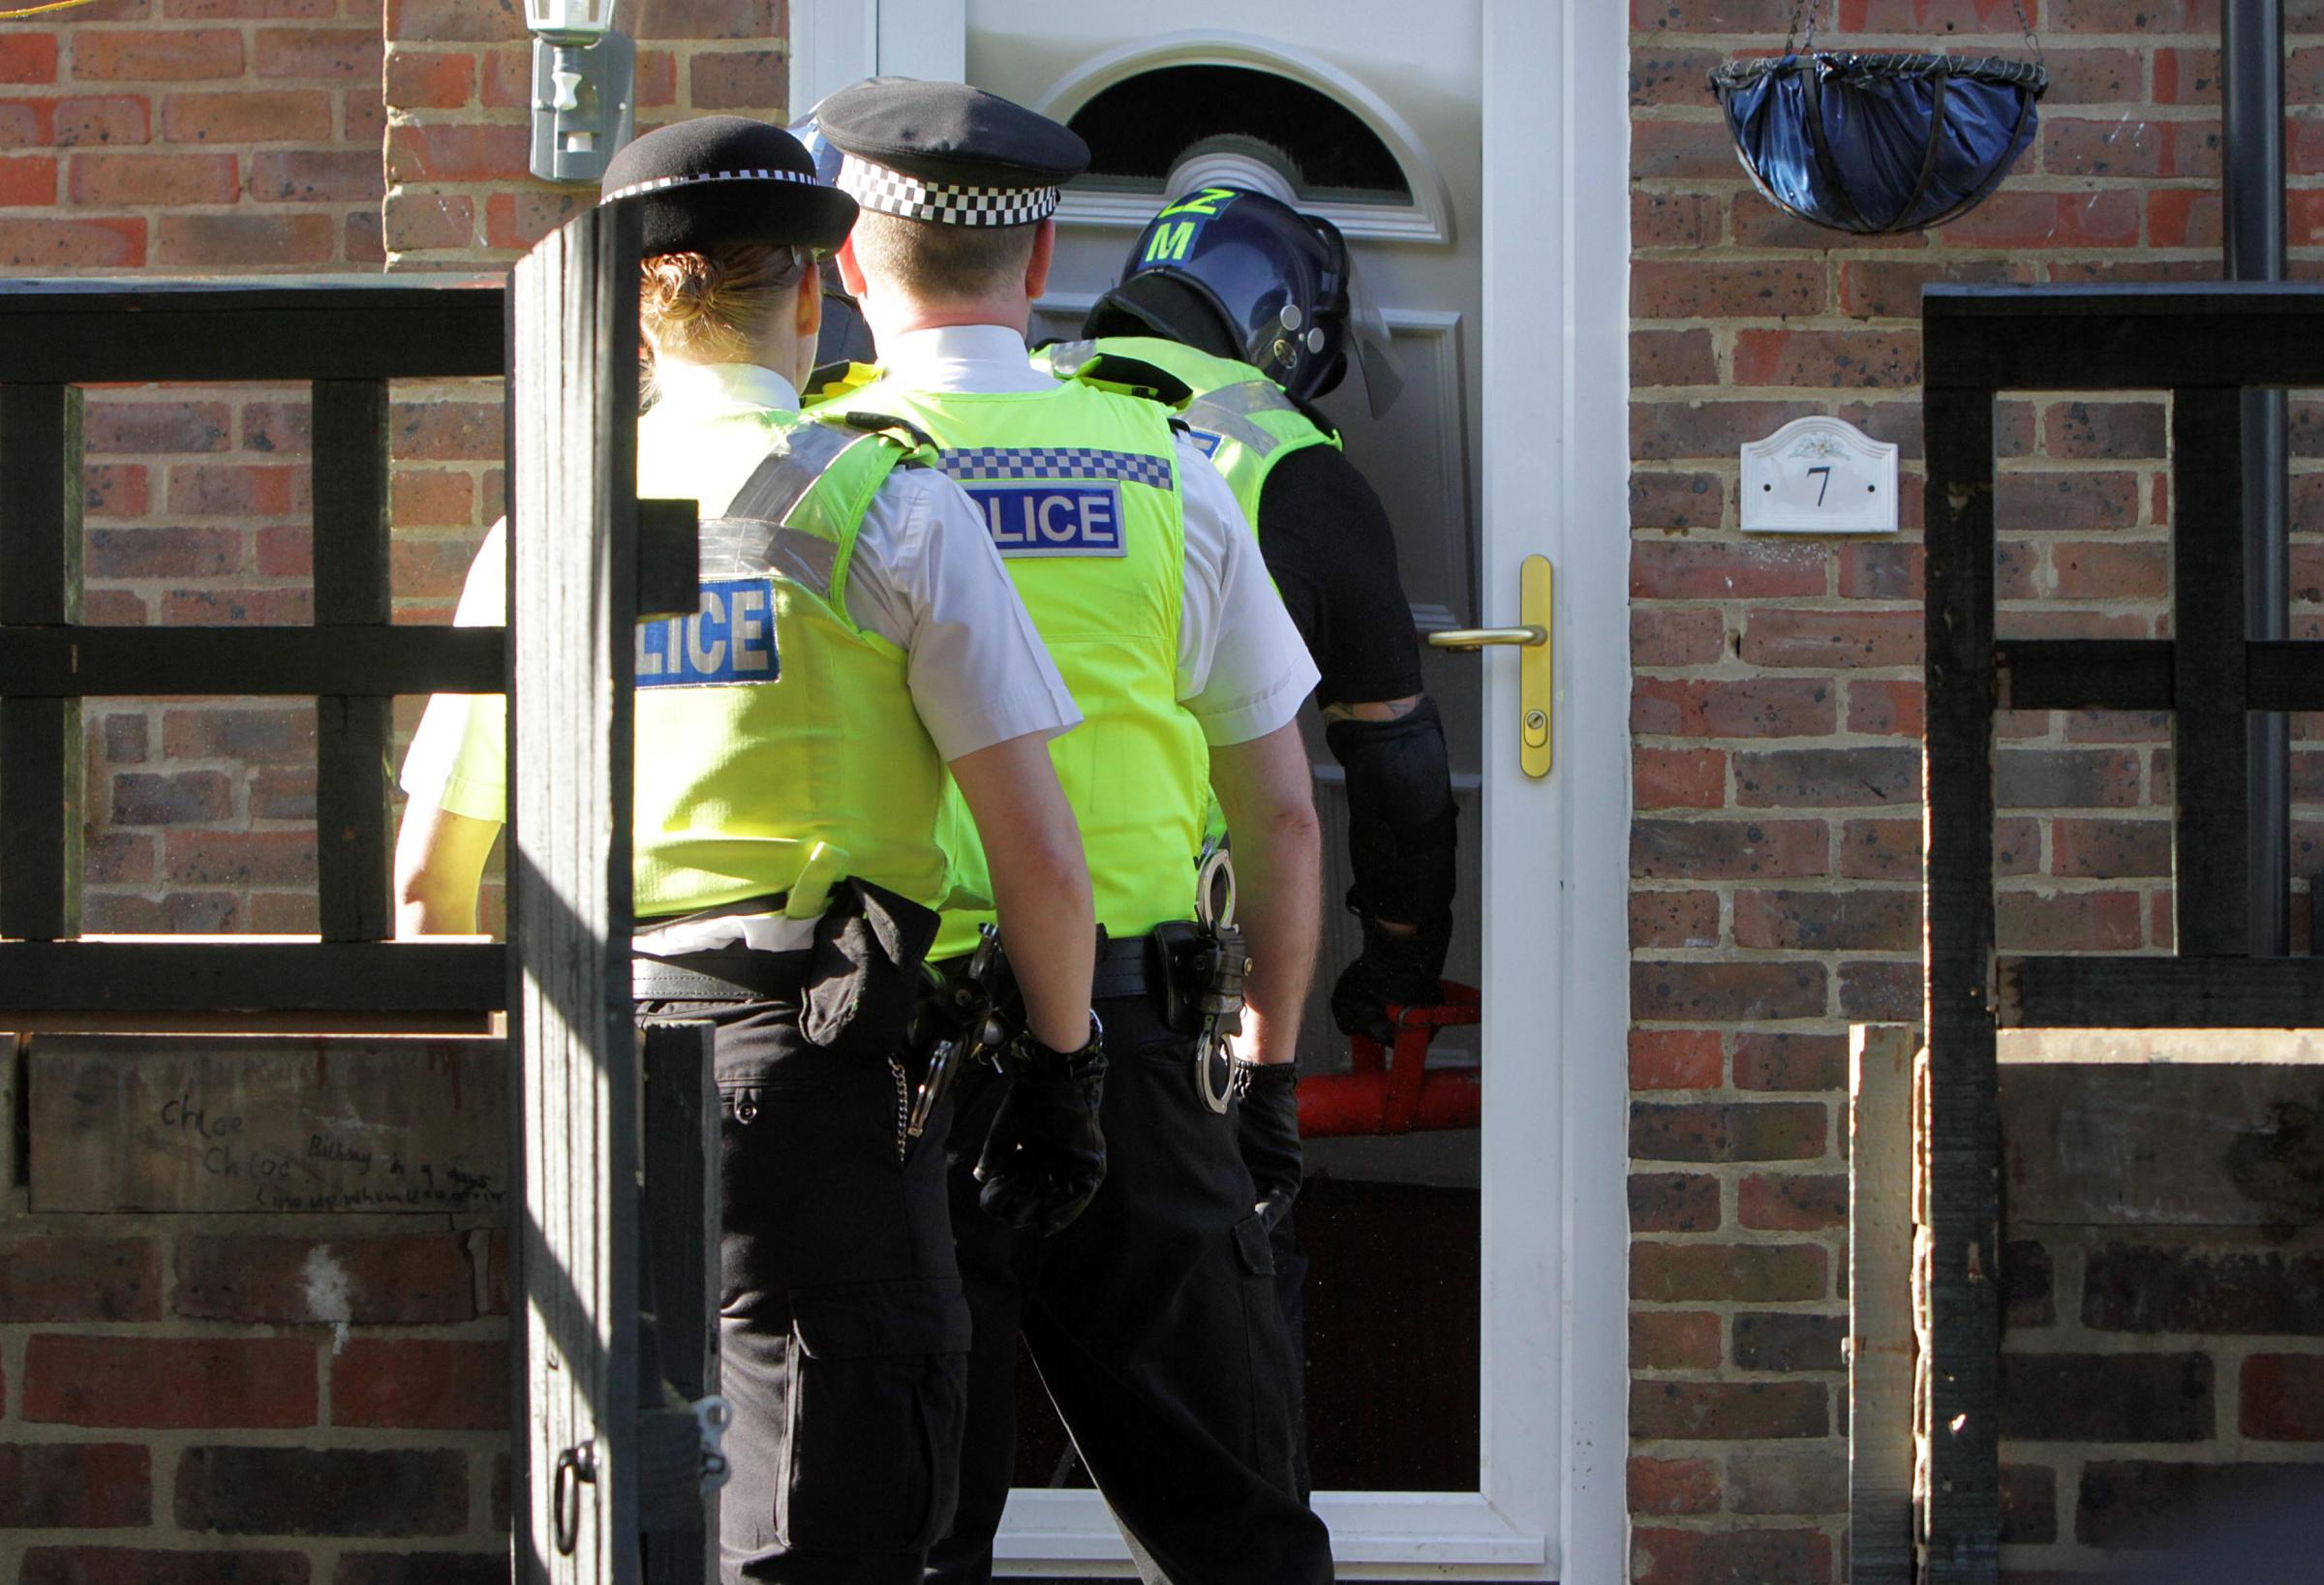 Police execute a drugs warrant on a home on Alnwick Court, Middlesbrough. Picture by Tom Banks